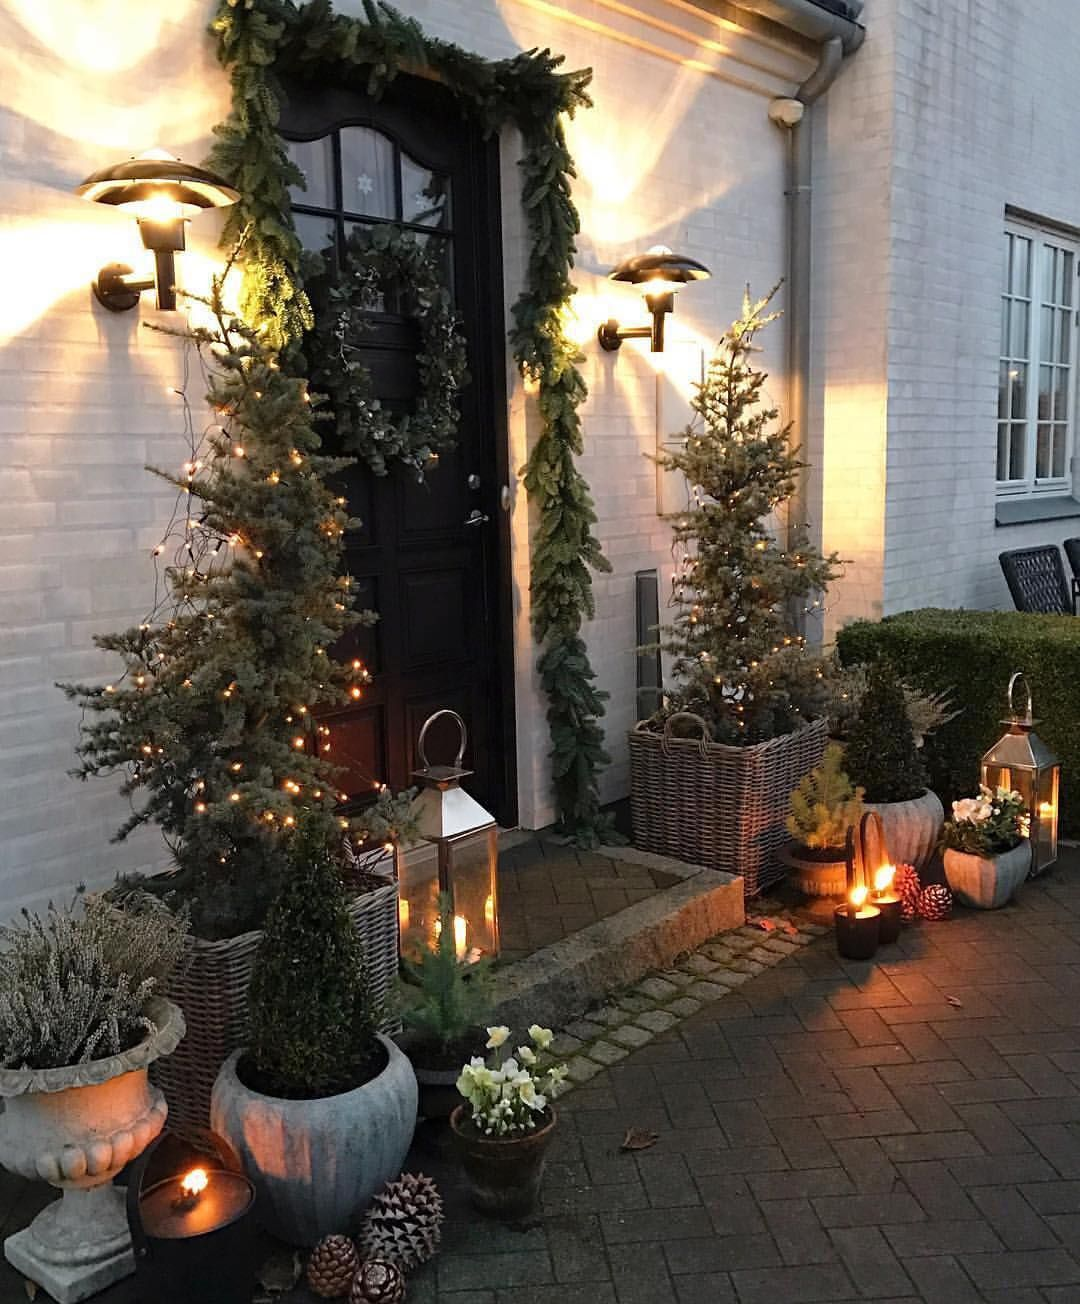 "Better Homes & Gardens on Instagram: ""@gncgarden is still living in the glow of Christmas through her welcoming decor ️"""